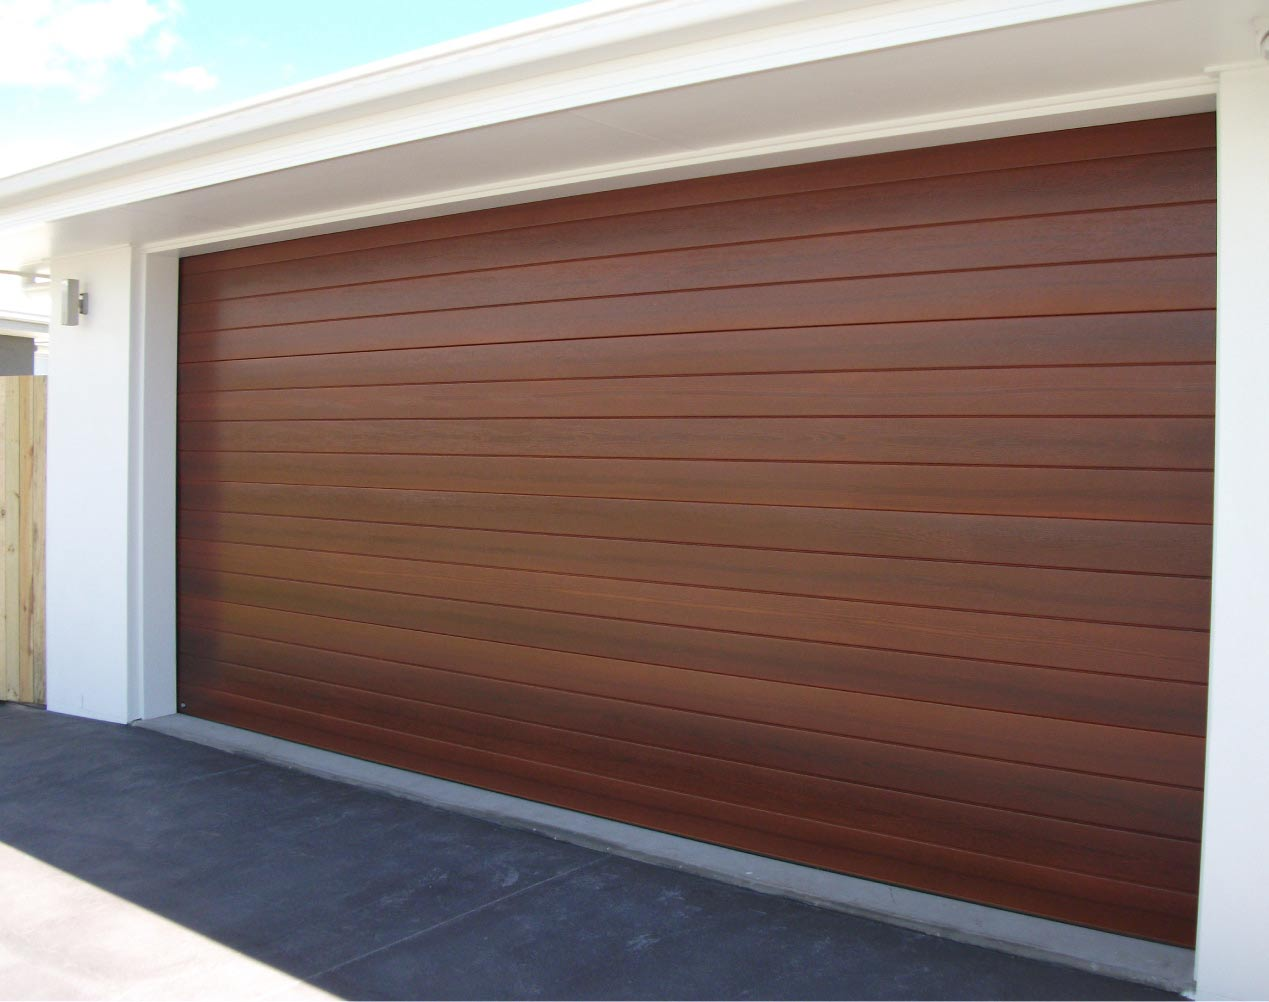 Western Sectional Garage Door